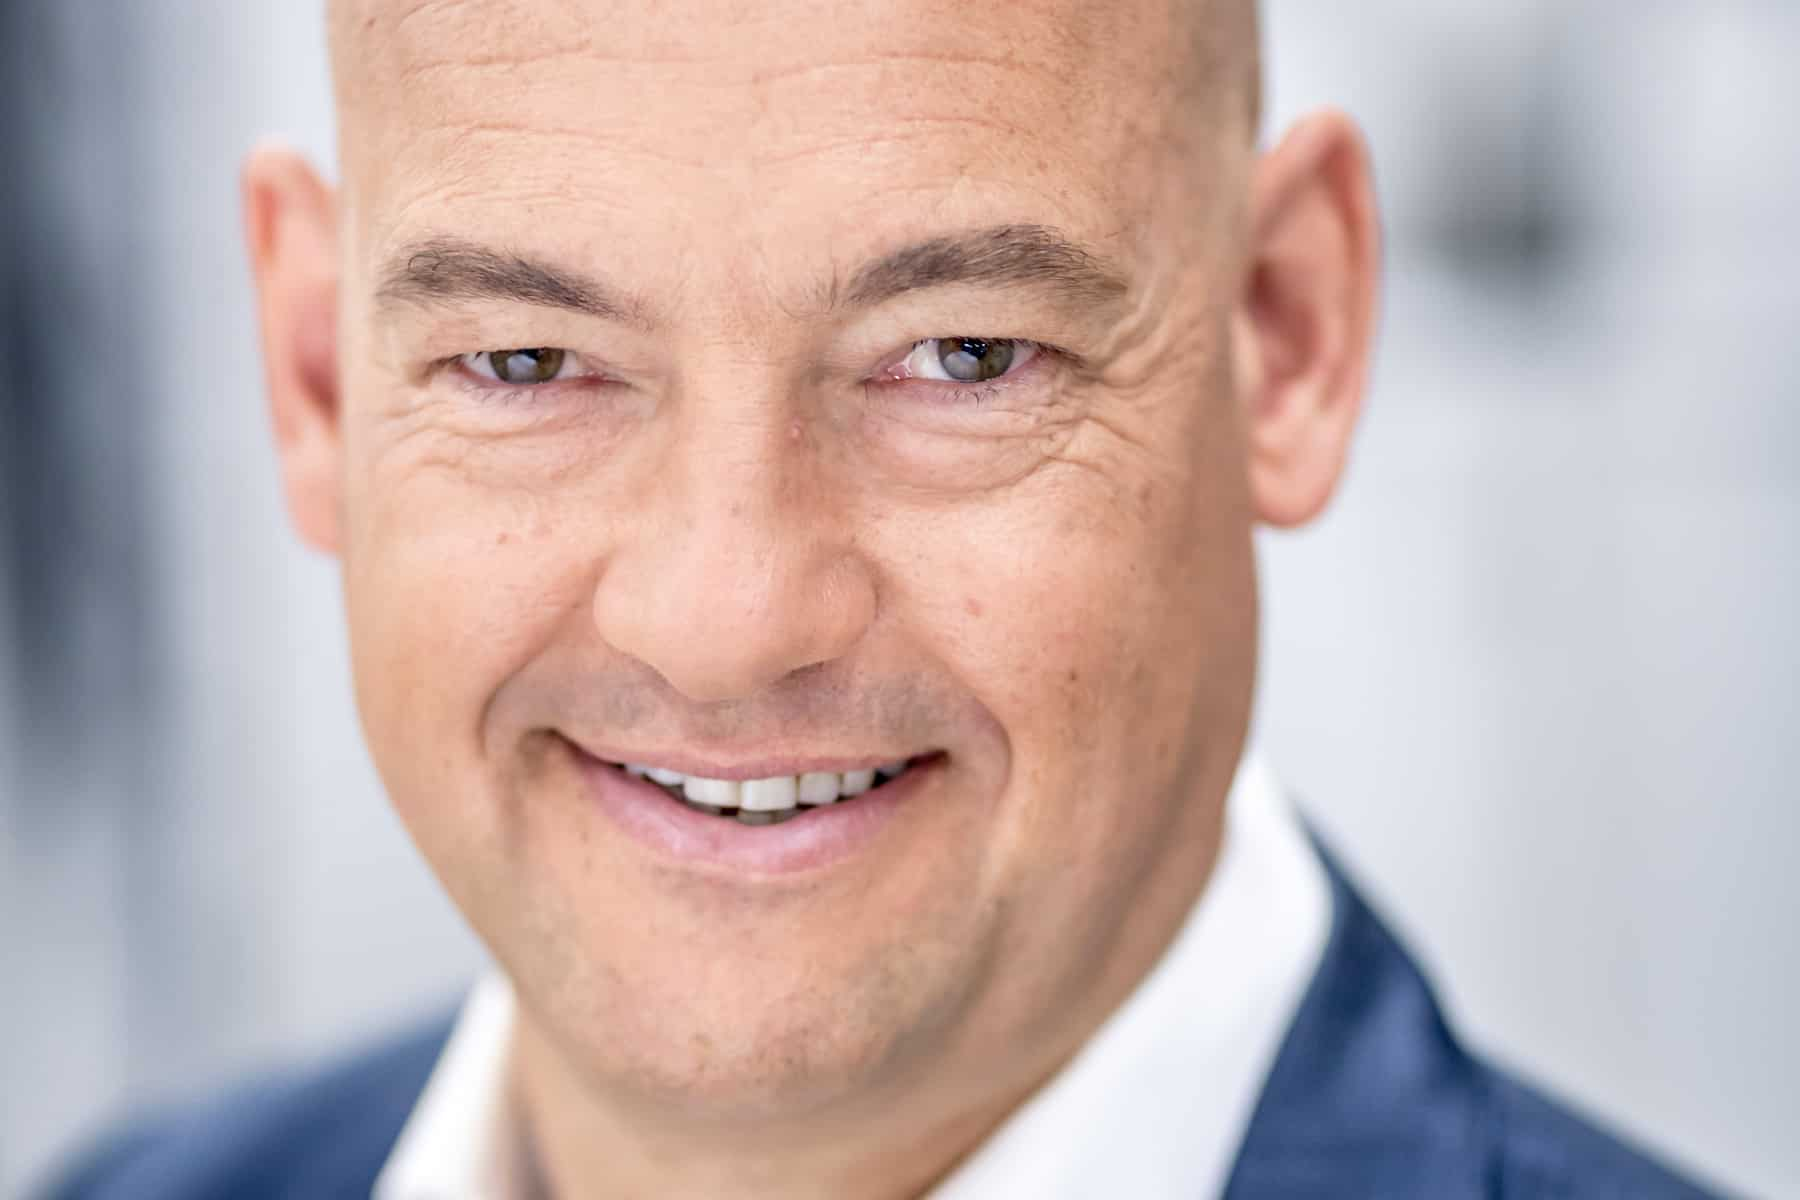 Steven Le Poole appointed as Chief Operating Officer